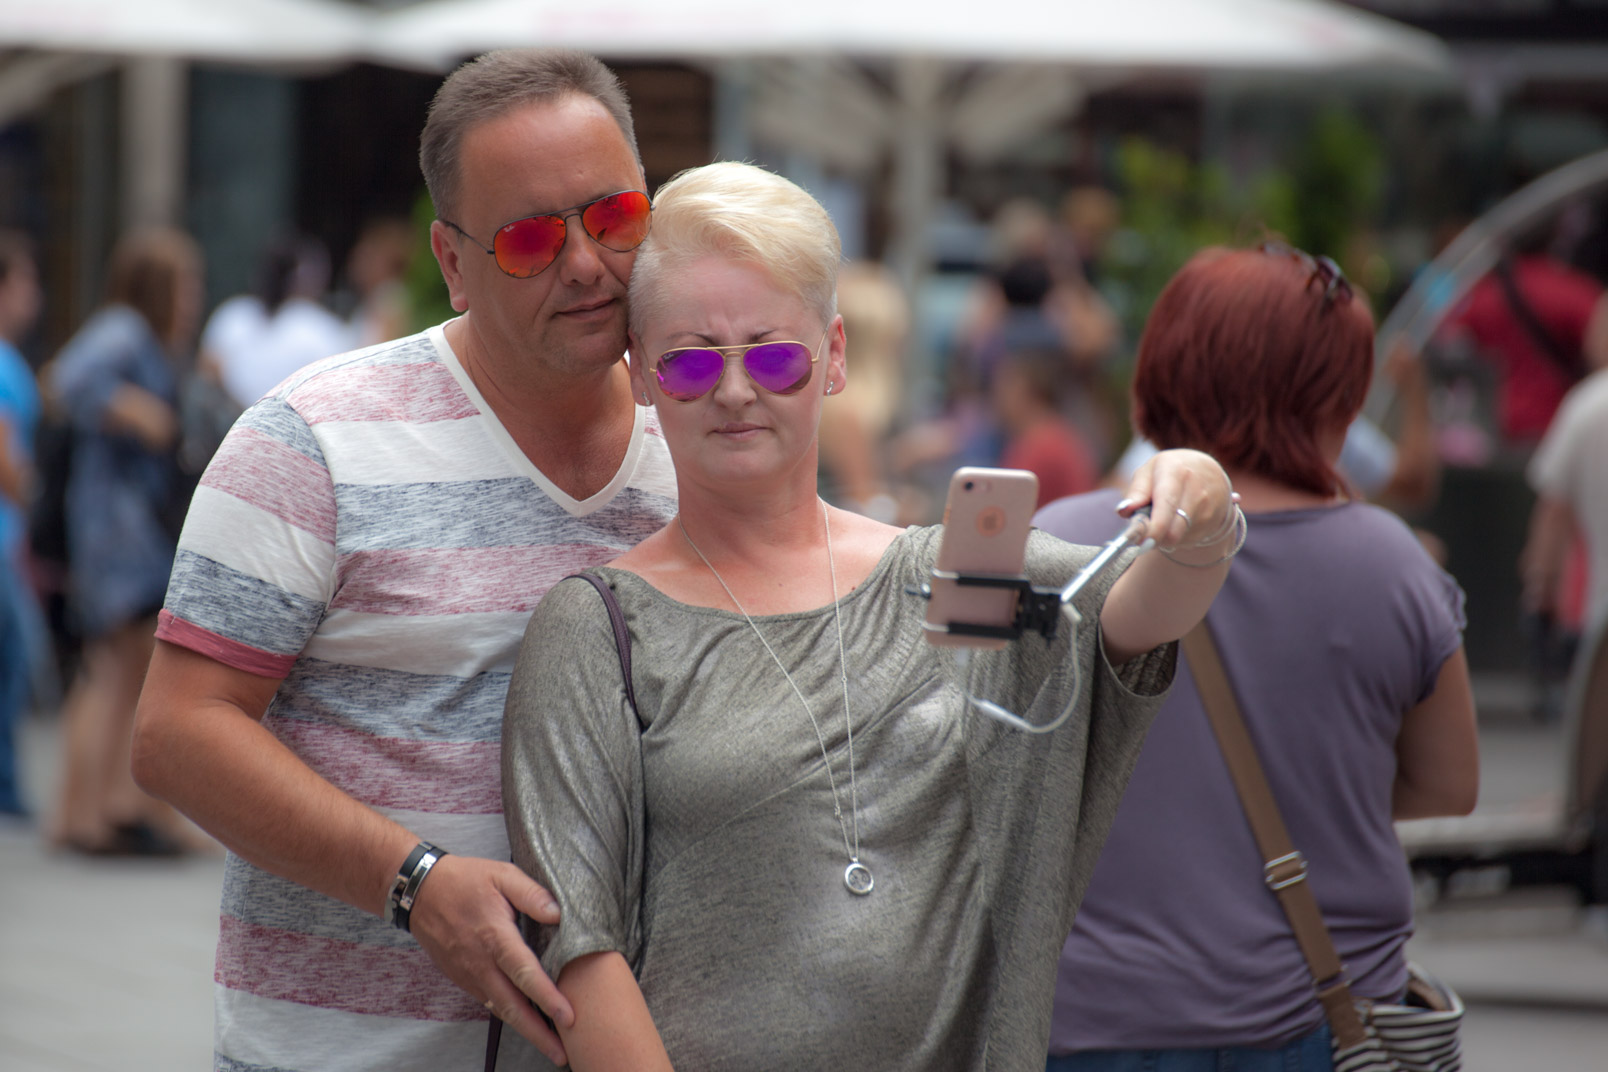 Man taking selfie with woman